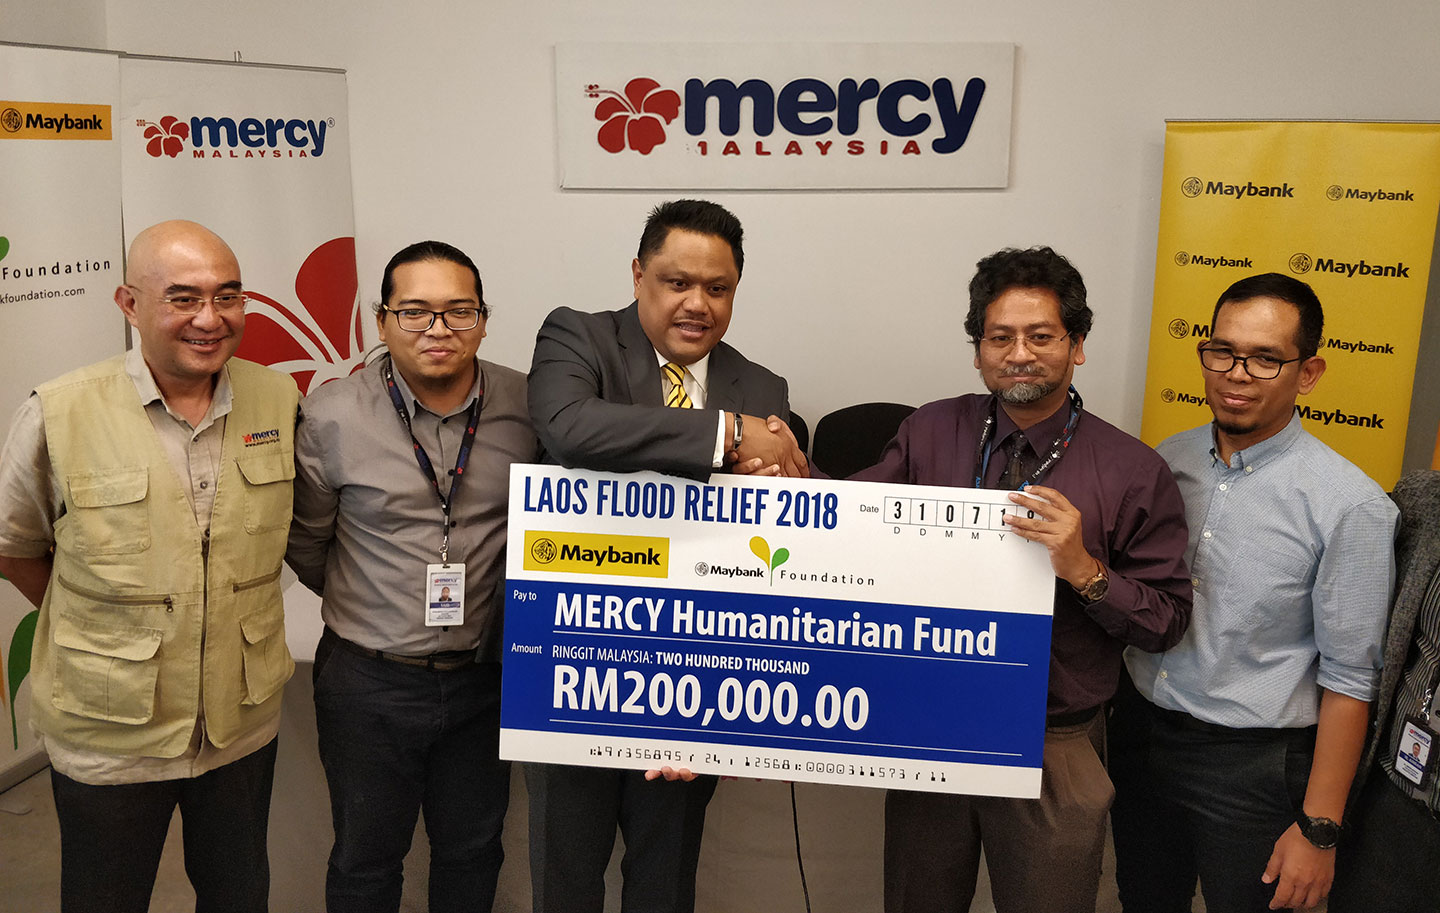 Maybank Donates RM 200,000 to Laos Flood Relief